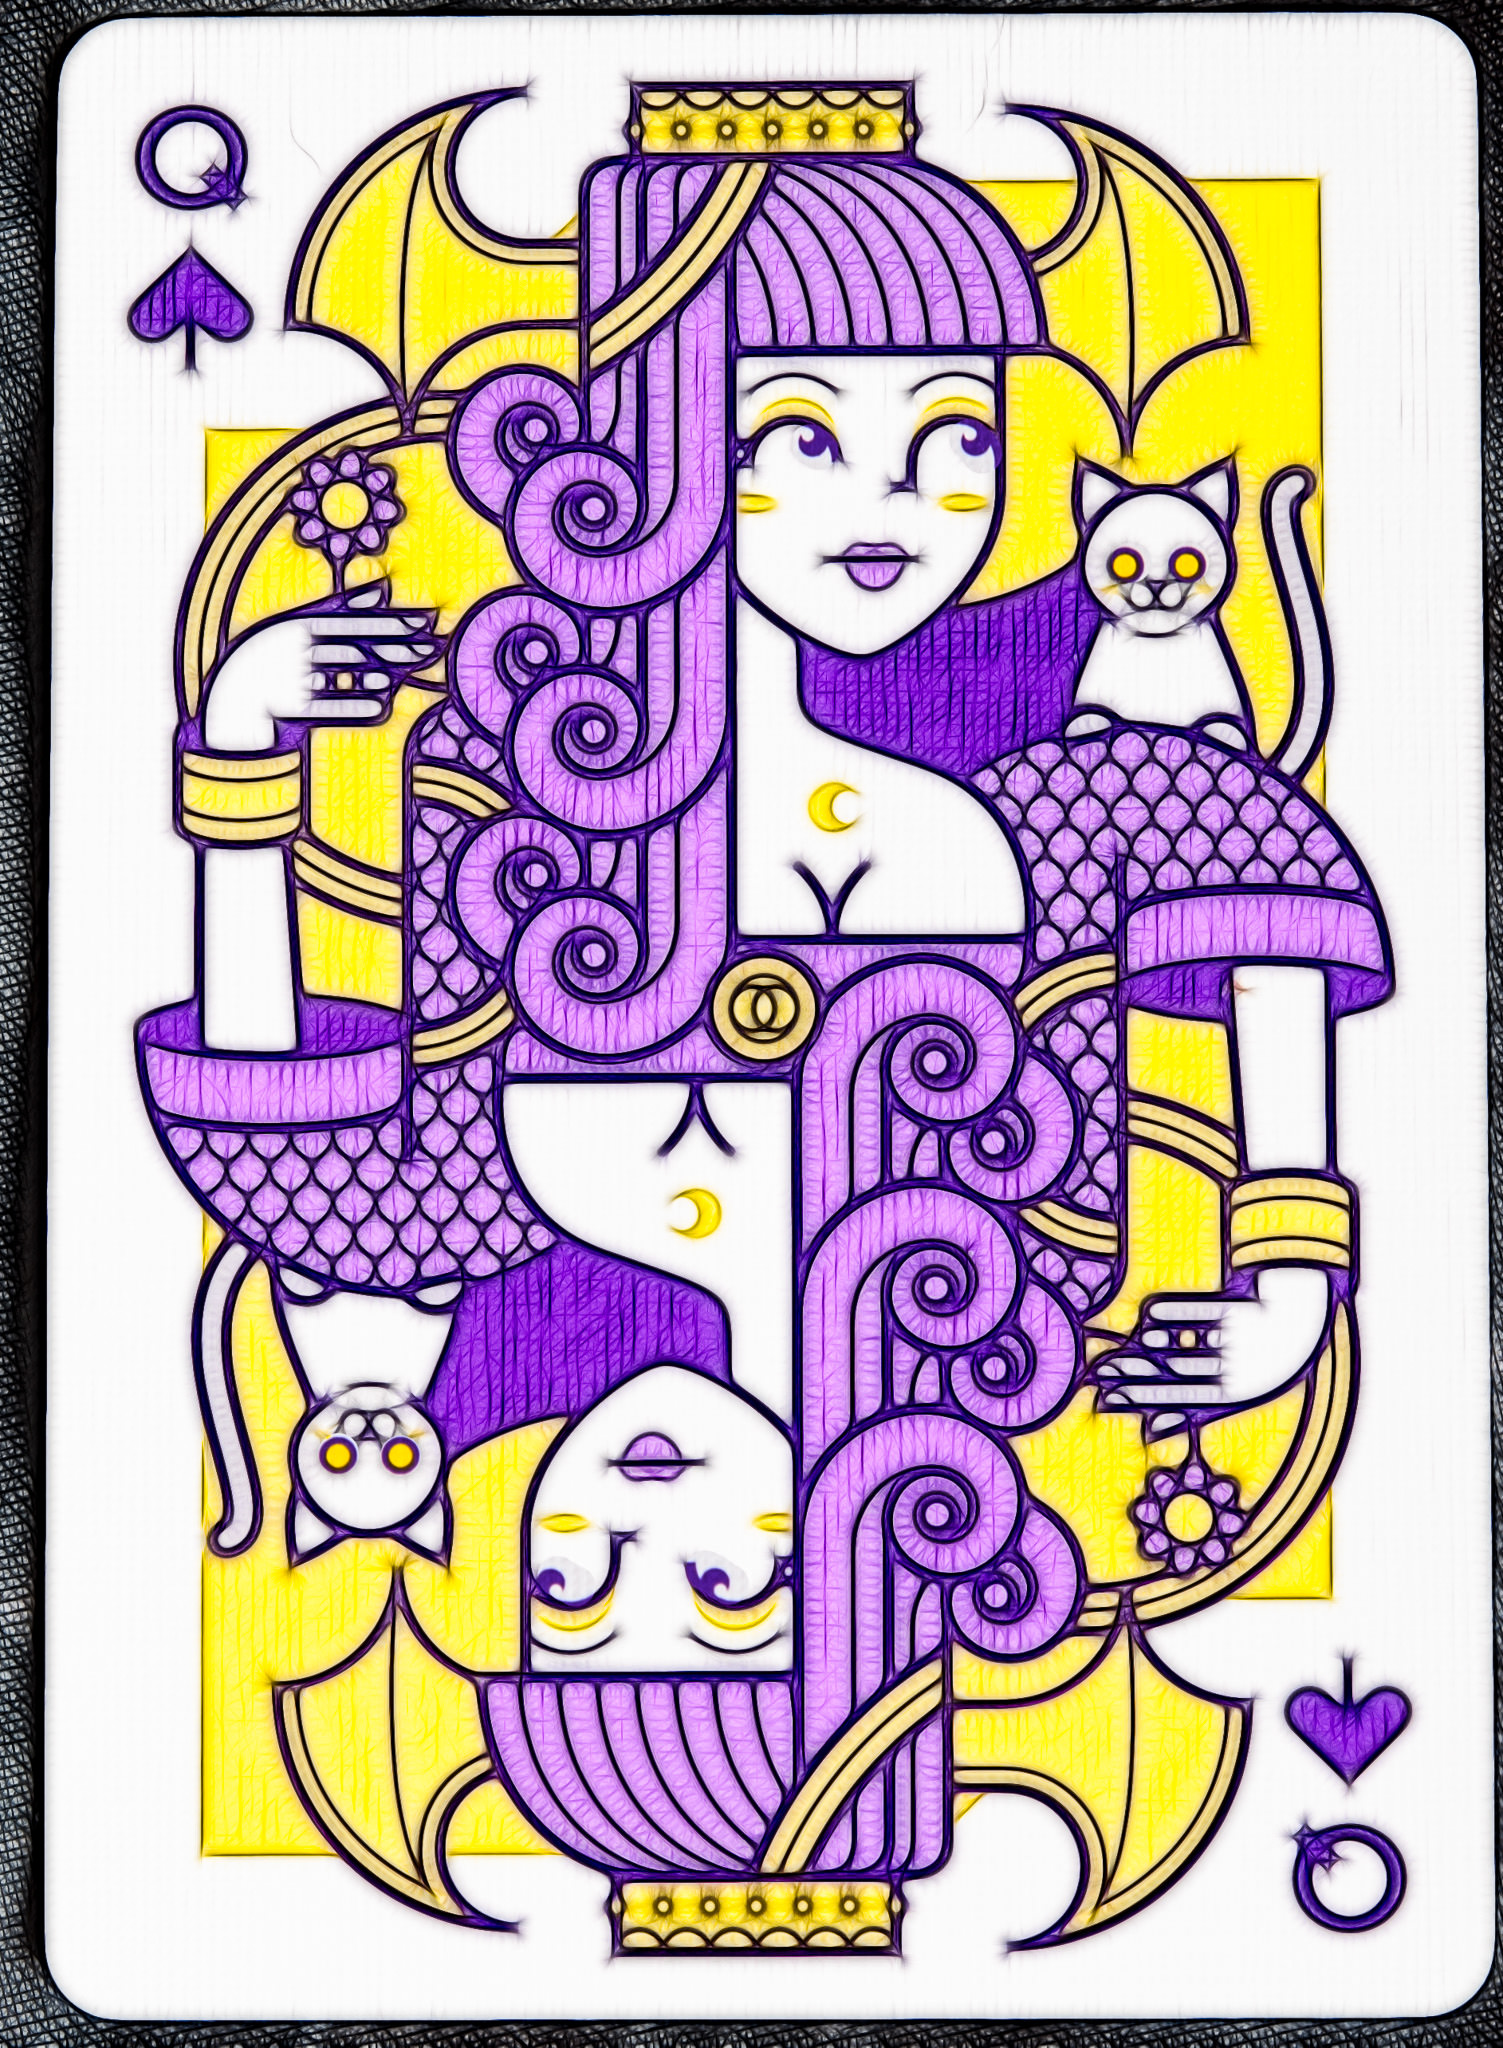 Lunatica Solstice: Queen of Spades (fractalized)